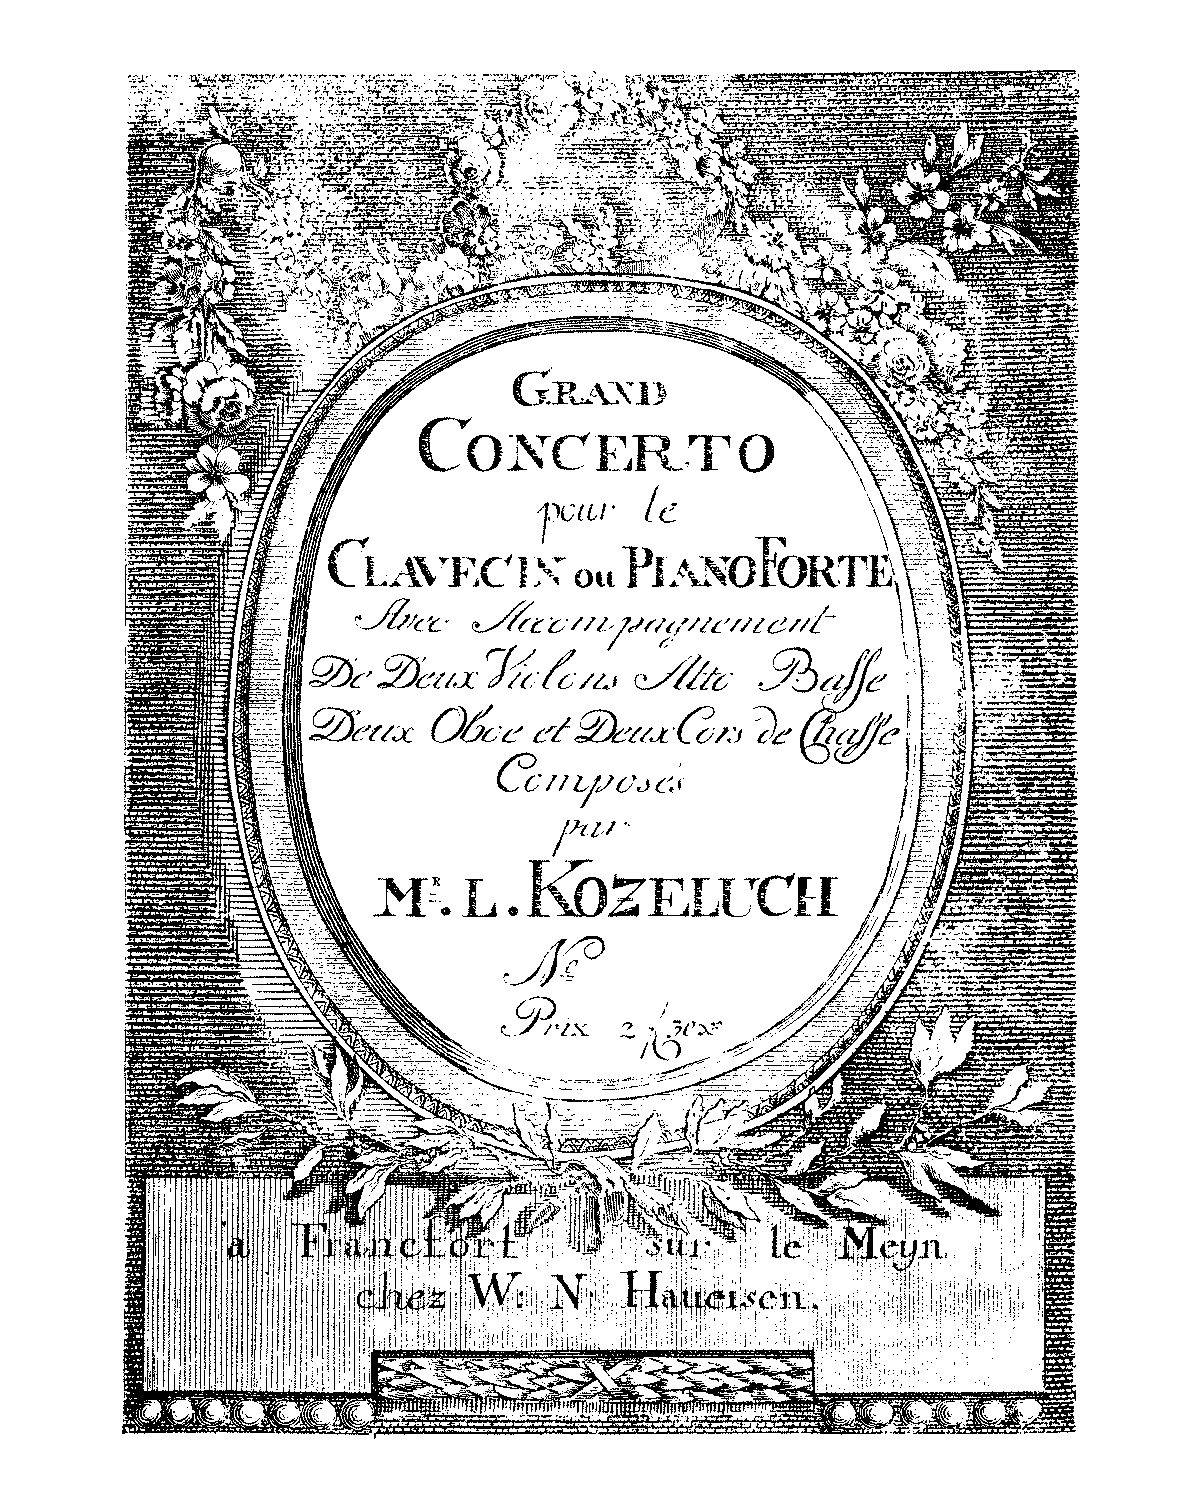 PMLP523333-LKozeluch Keyboard Concerto in D major, PIV7 orchparts.pdf